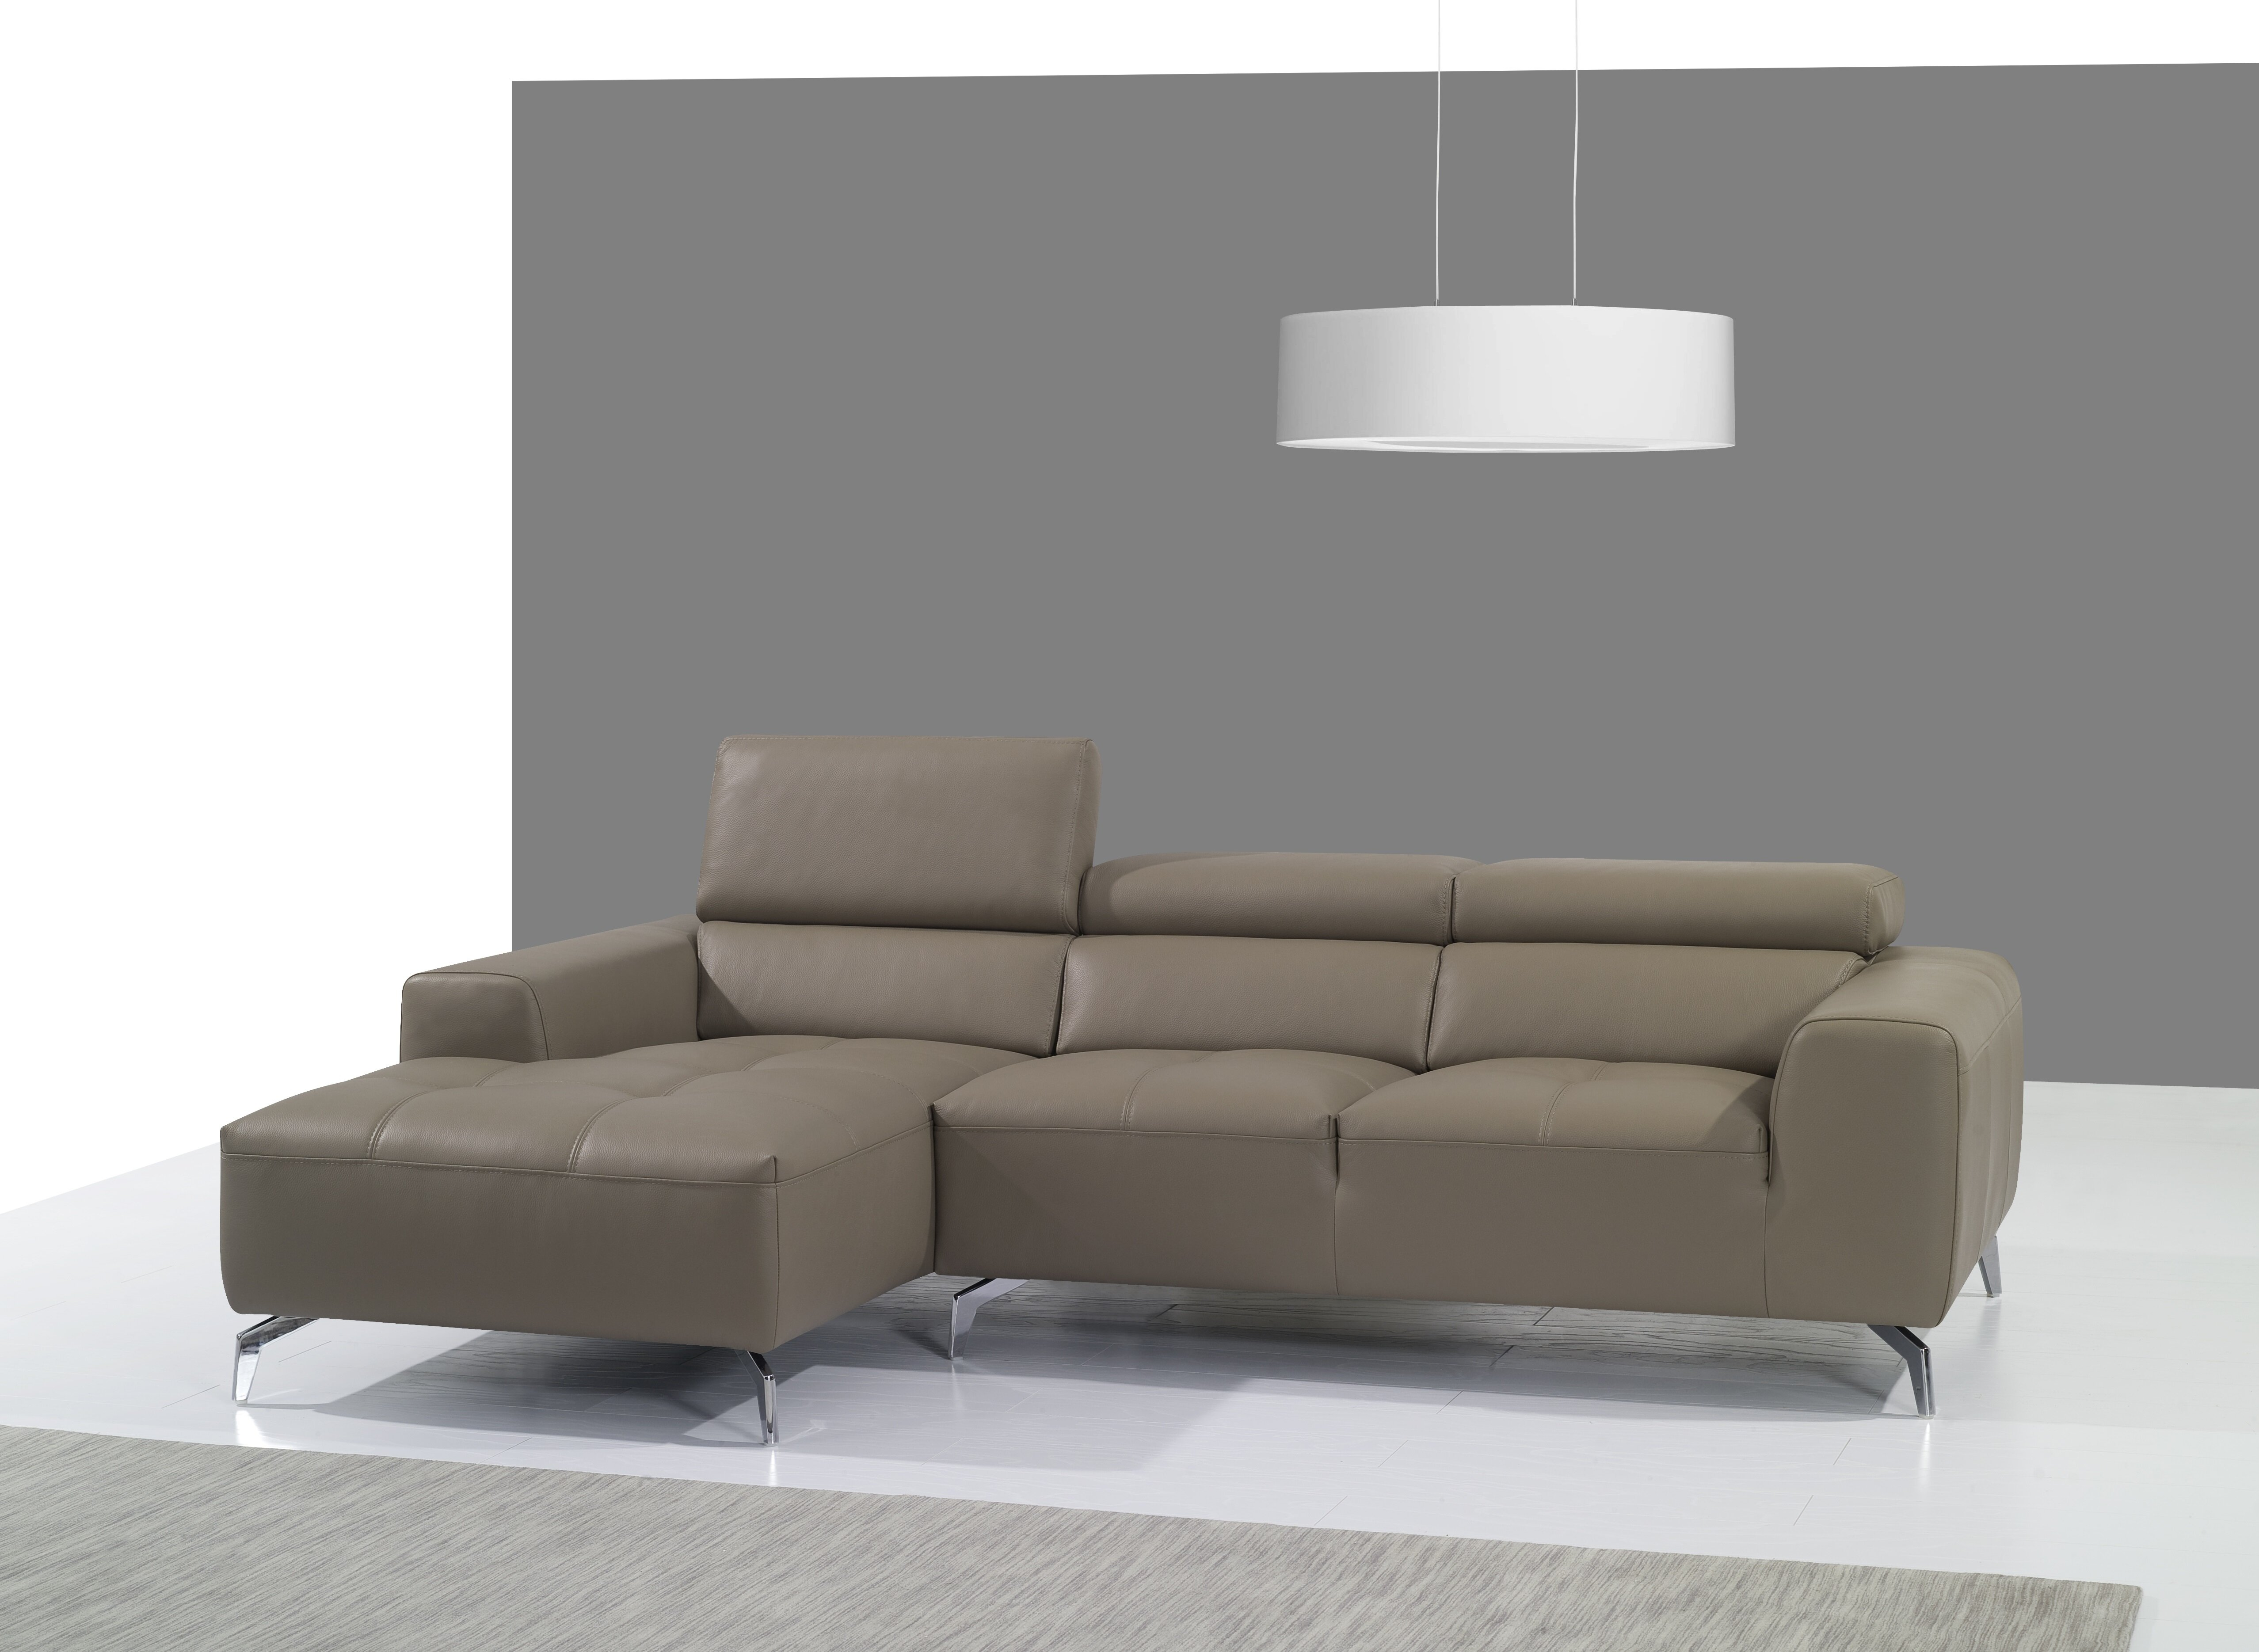 Incredible Orren Ellis Alden Leather Sectional Reviews Wayfair Gmtry Best Dining Table And Chair Ideas Images Gmtryco